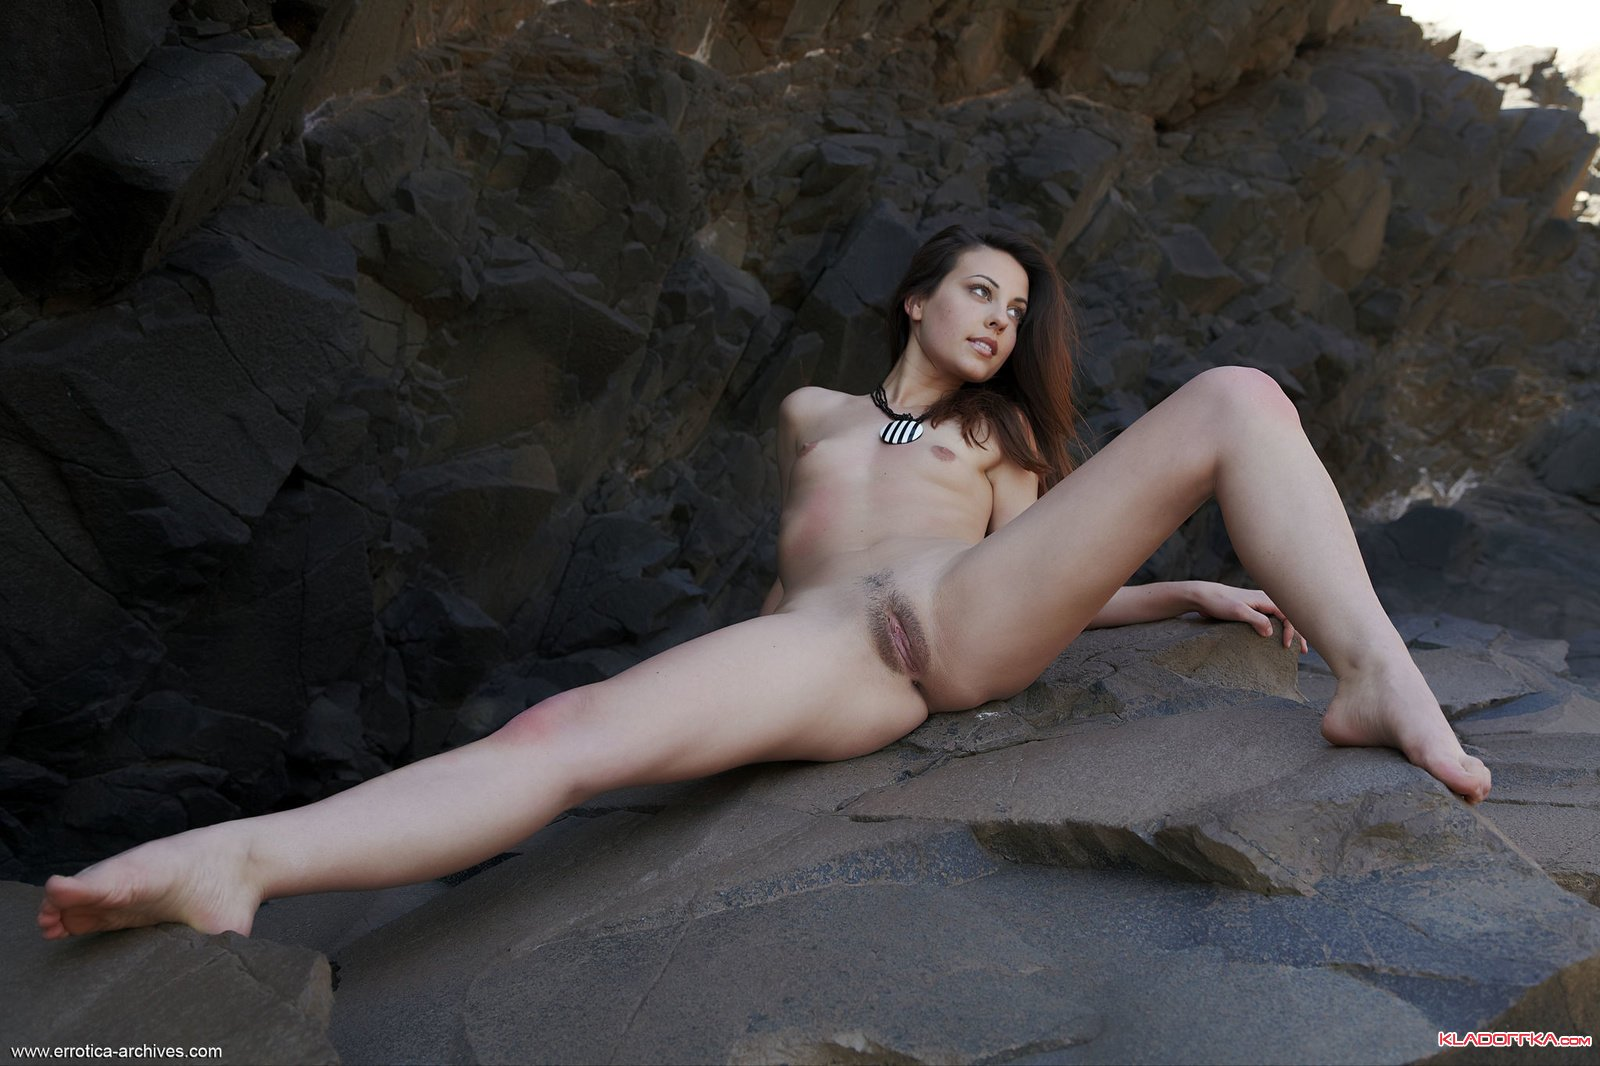 Variant does lorena garcia nude can speak